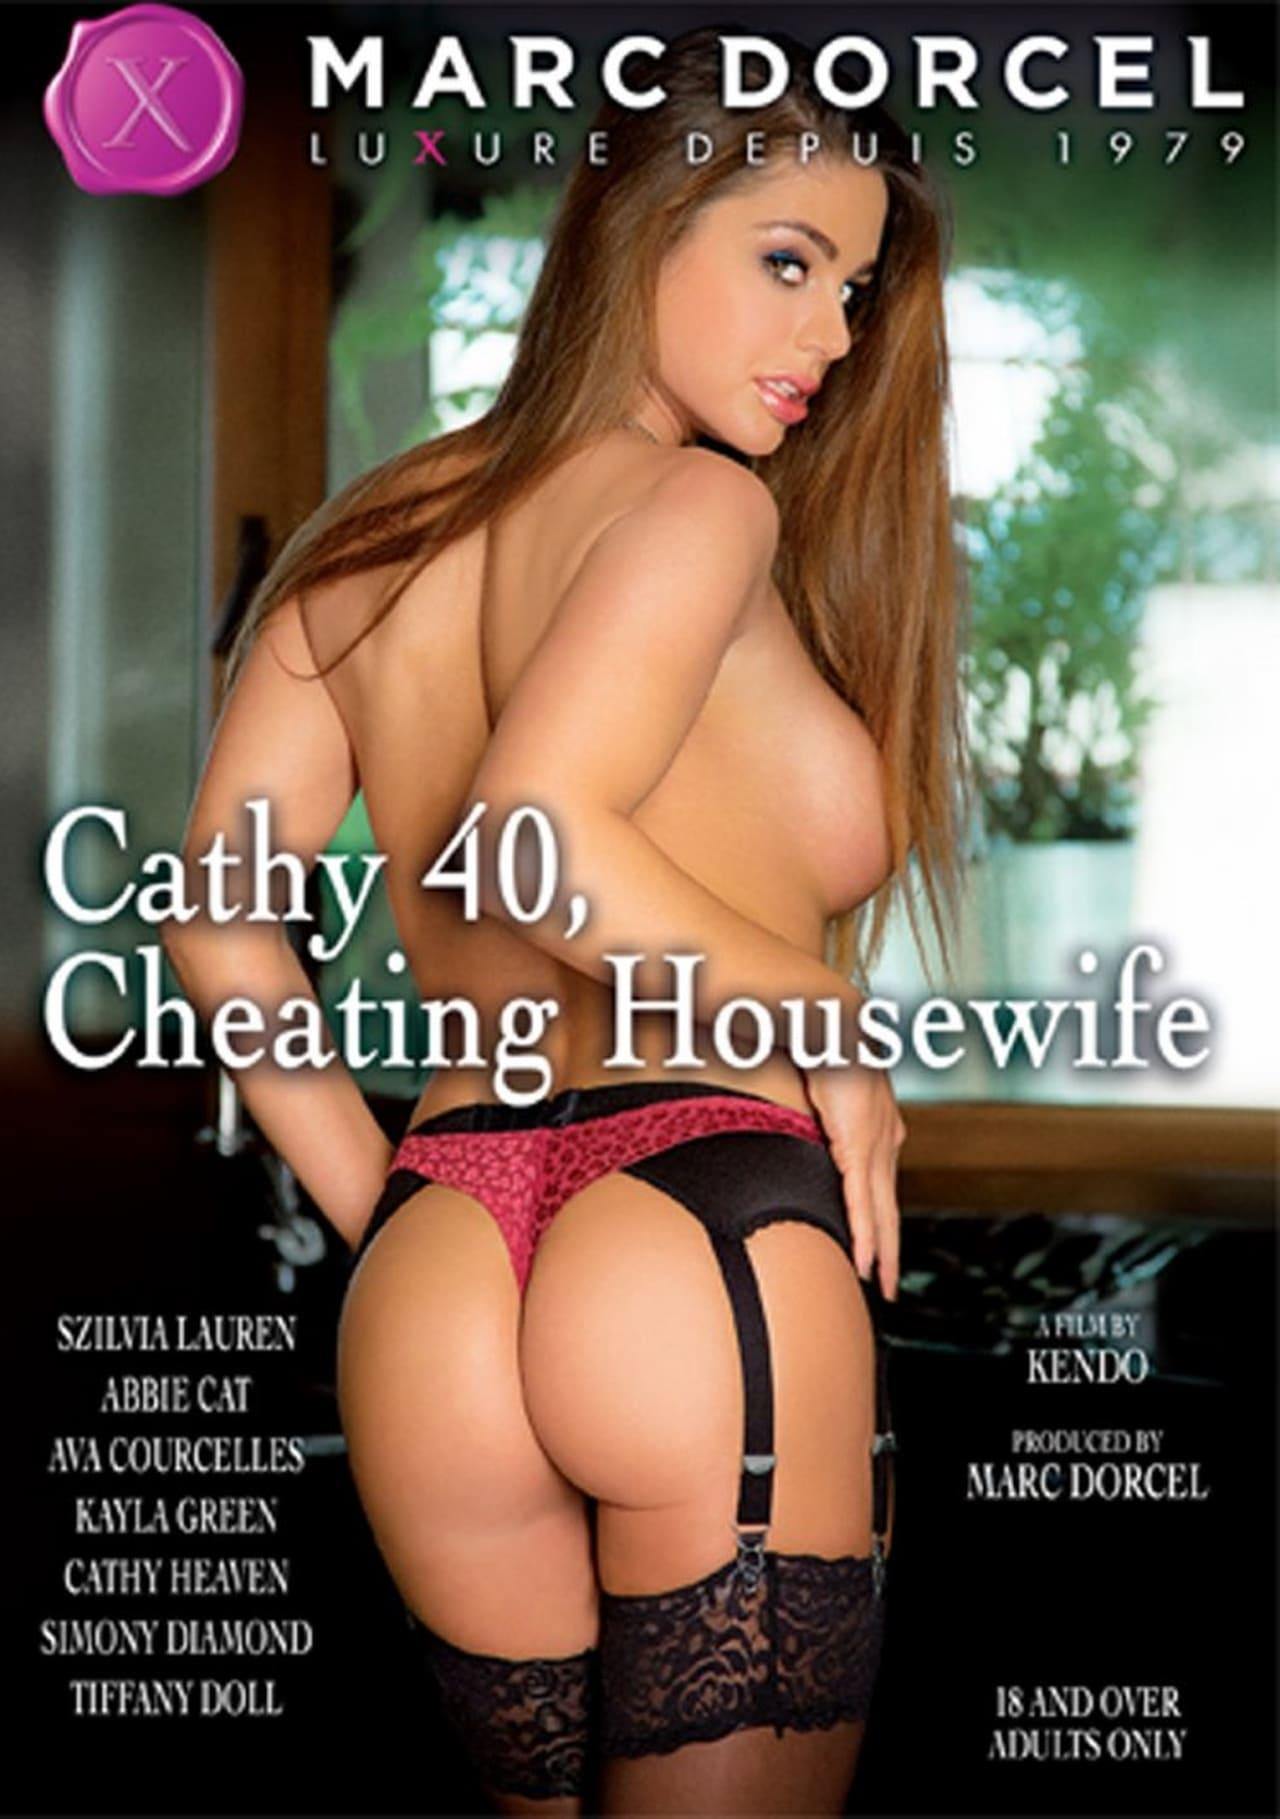 Cathy 40, Cheating Housewife